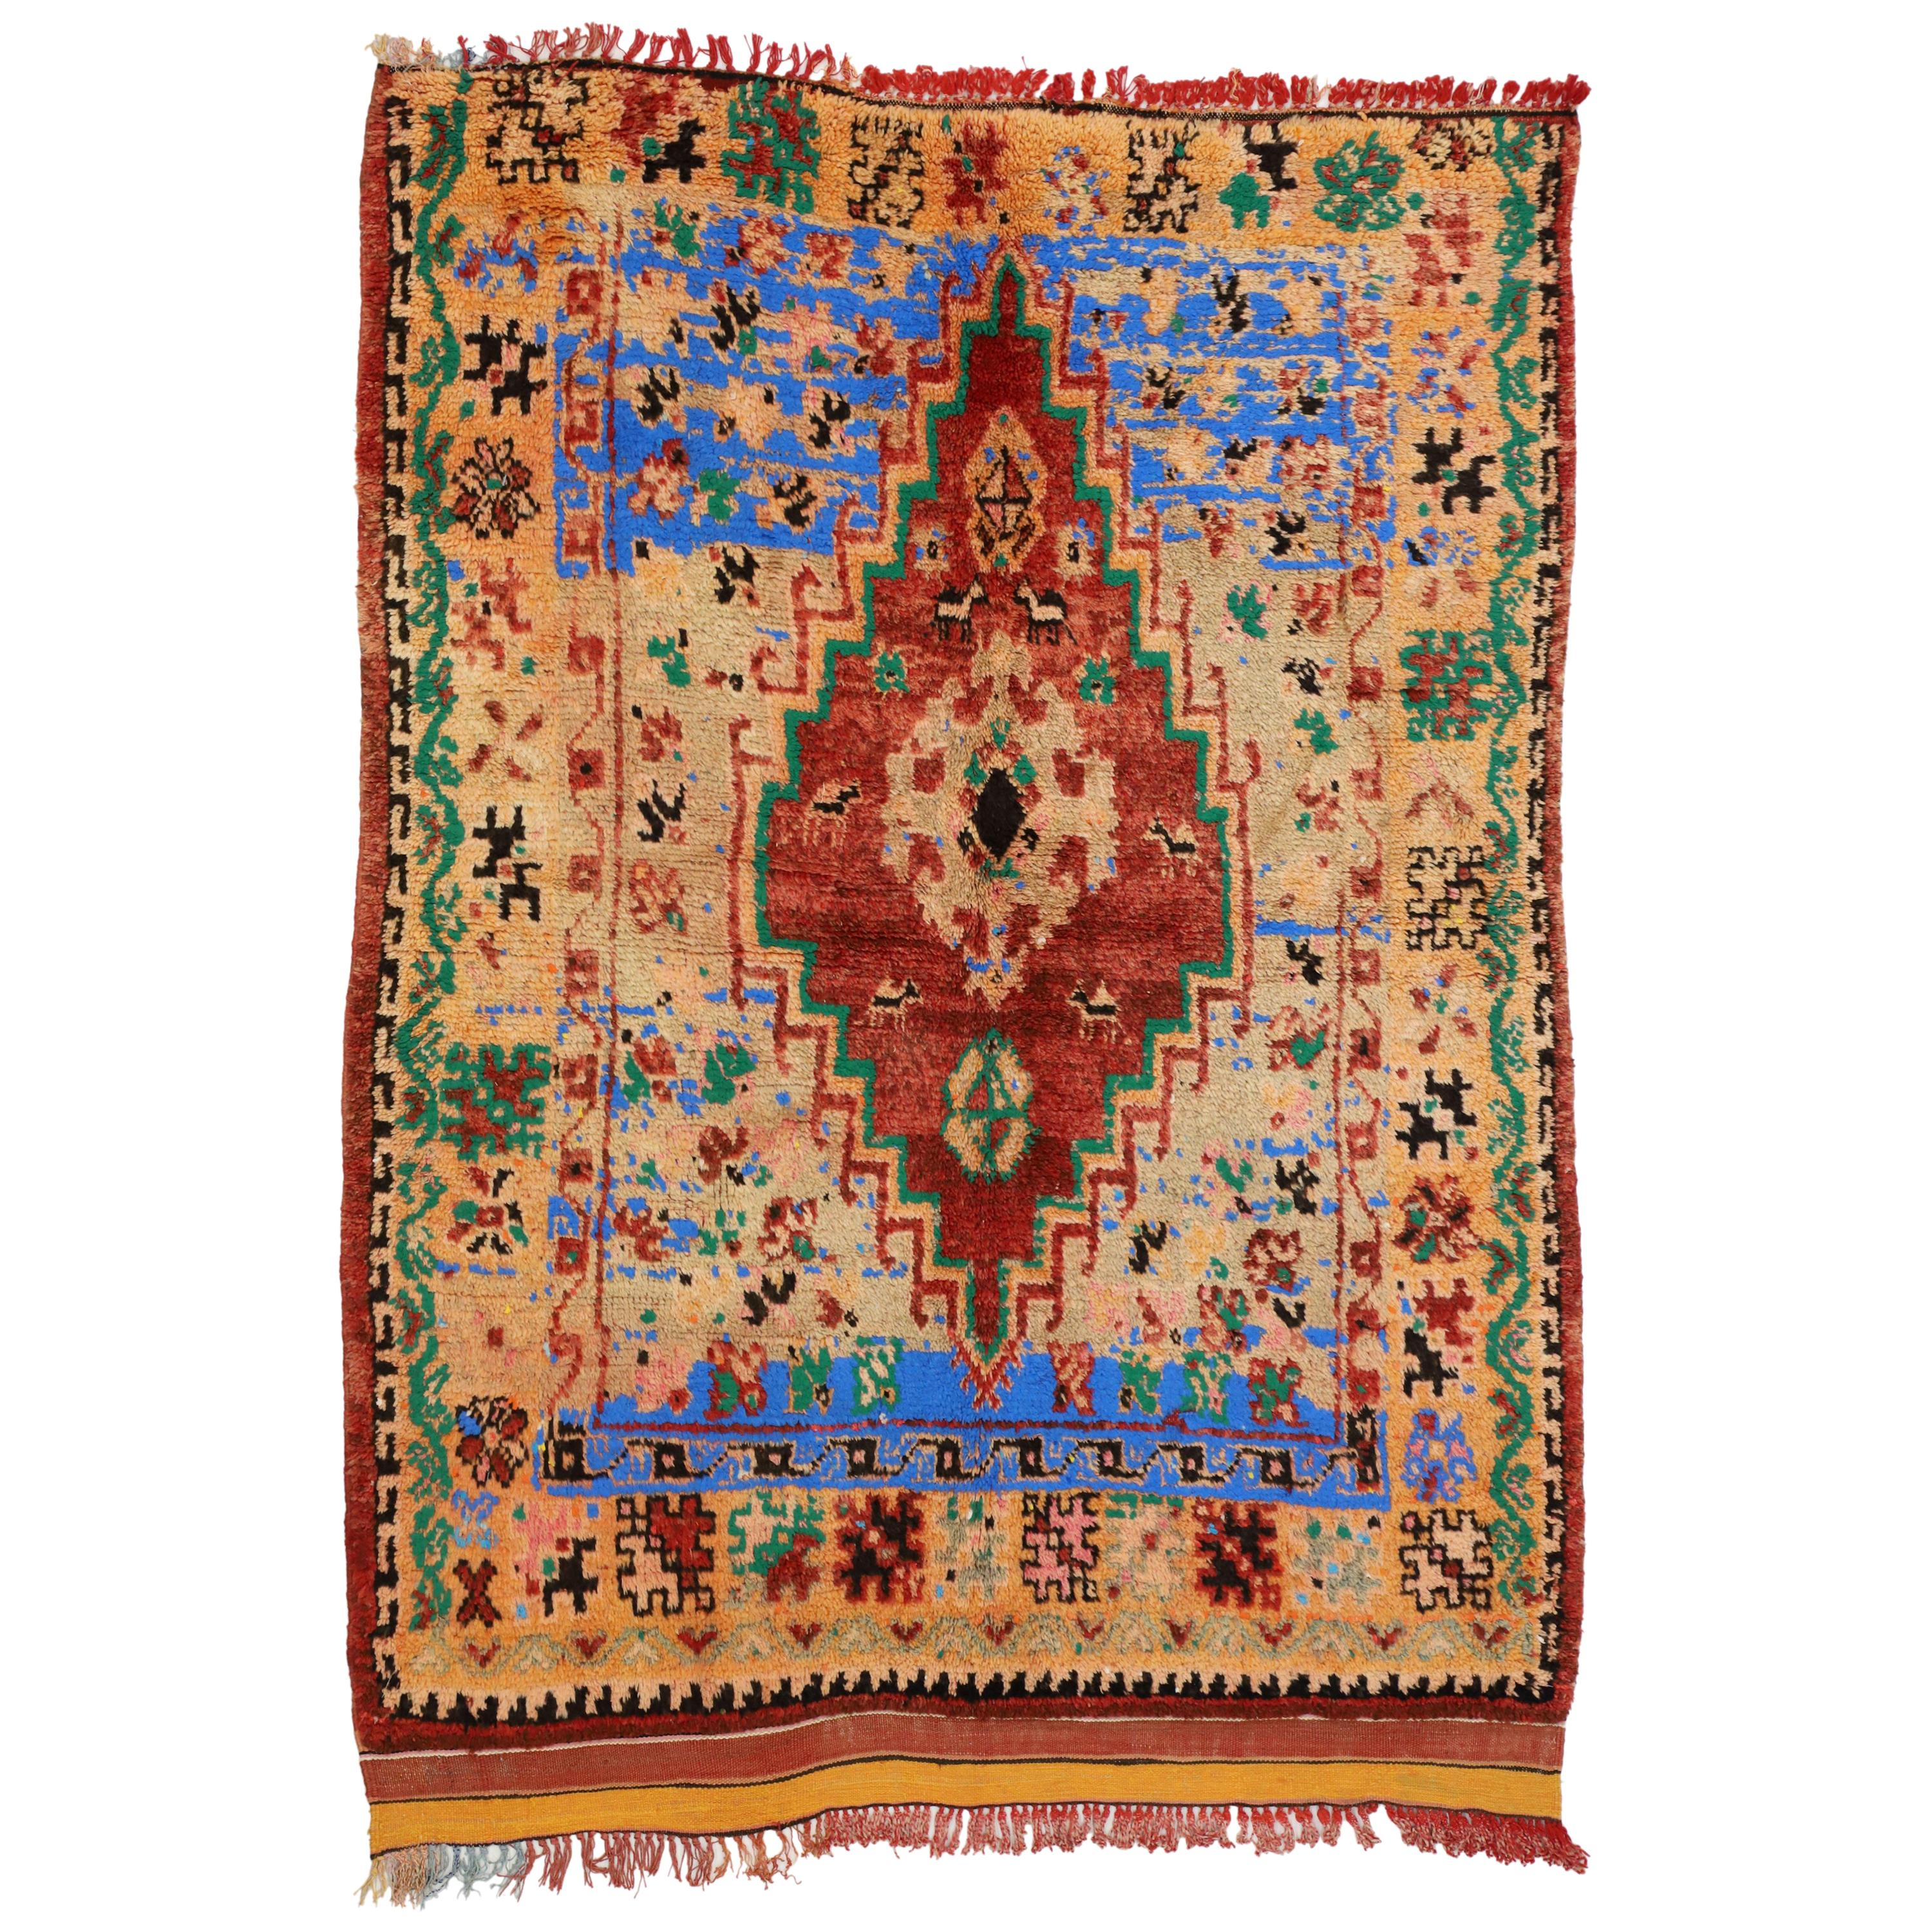 Vintage Berber Moroccan Boujad Rug with Contemporary Abstract Tribal Style